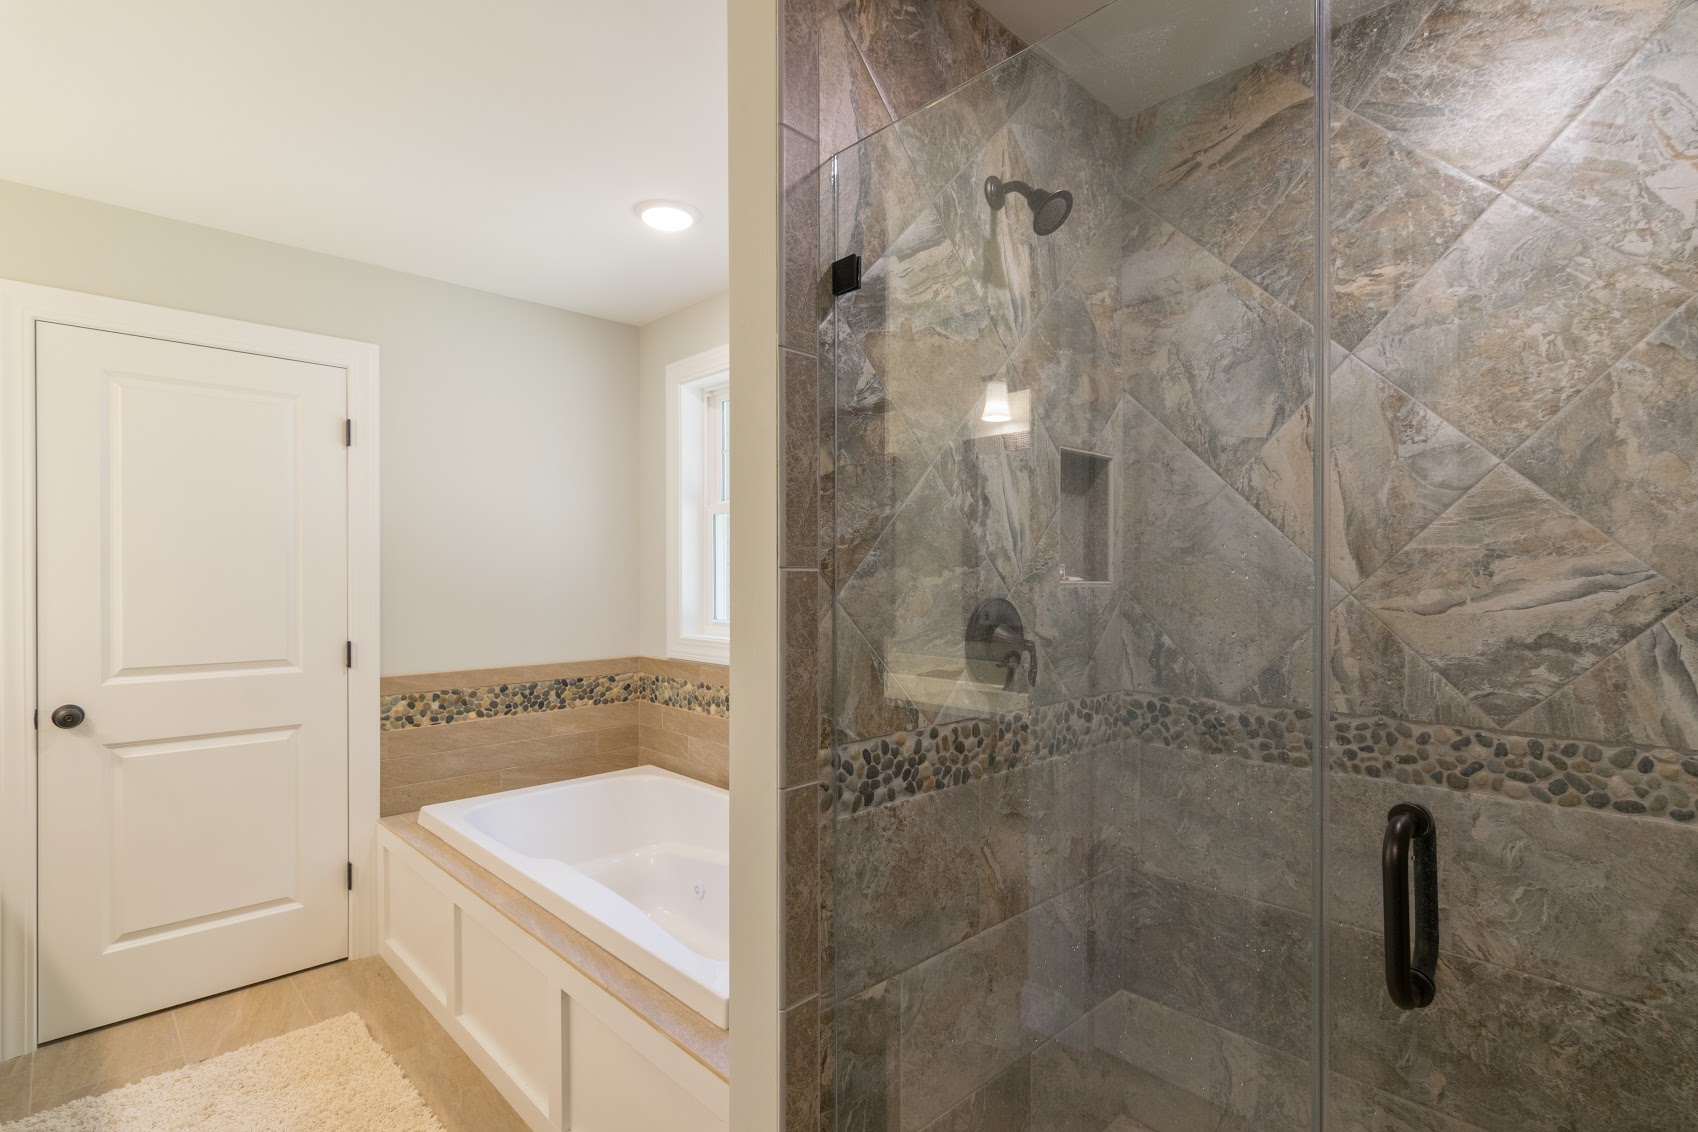 https://www.blackrockus.com/wp-content/uploads/2017/12/Brigham-Heights-Bathroom-Shower.jpg